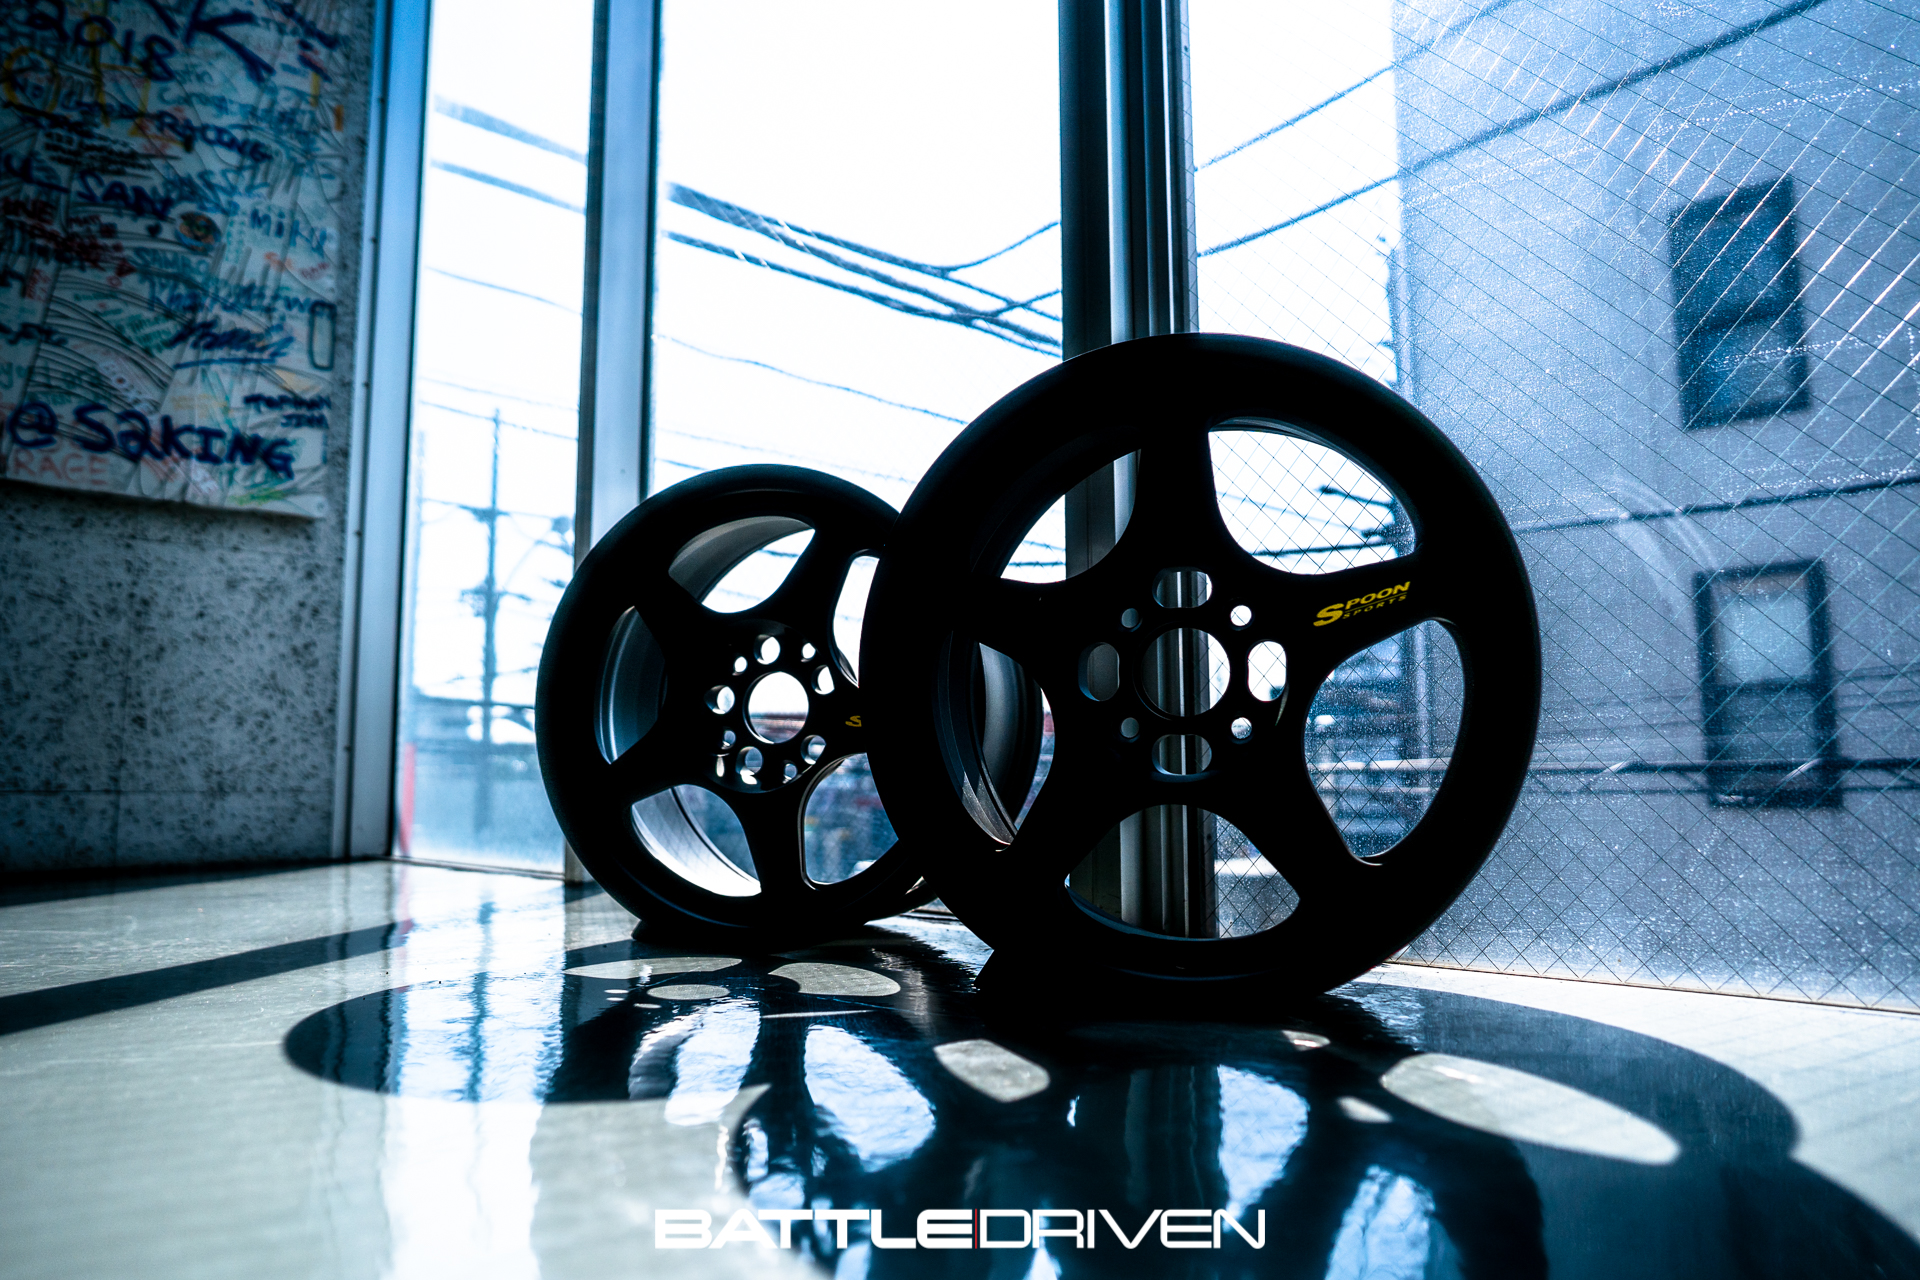 A play on shadows and light with a pair of Spoon Sports SW388 forged wheels by the entrance. Gorgeous.